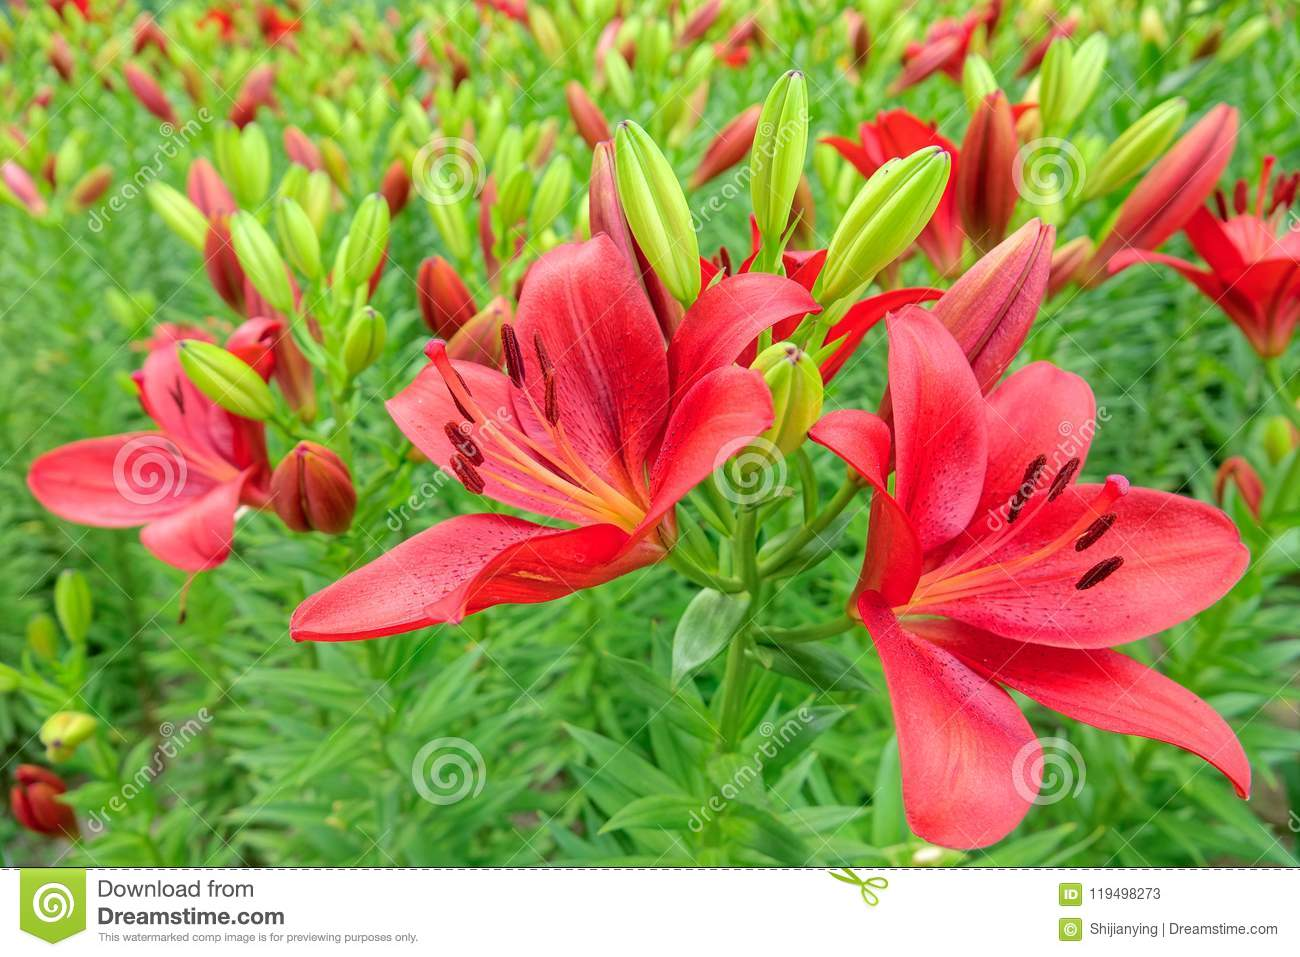 Lily flowers stock image. Image of lilium, color, flowers - 119498273